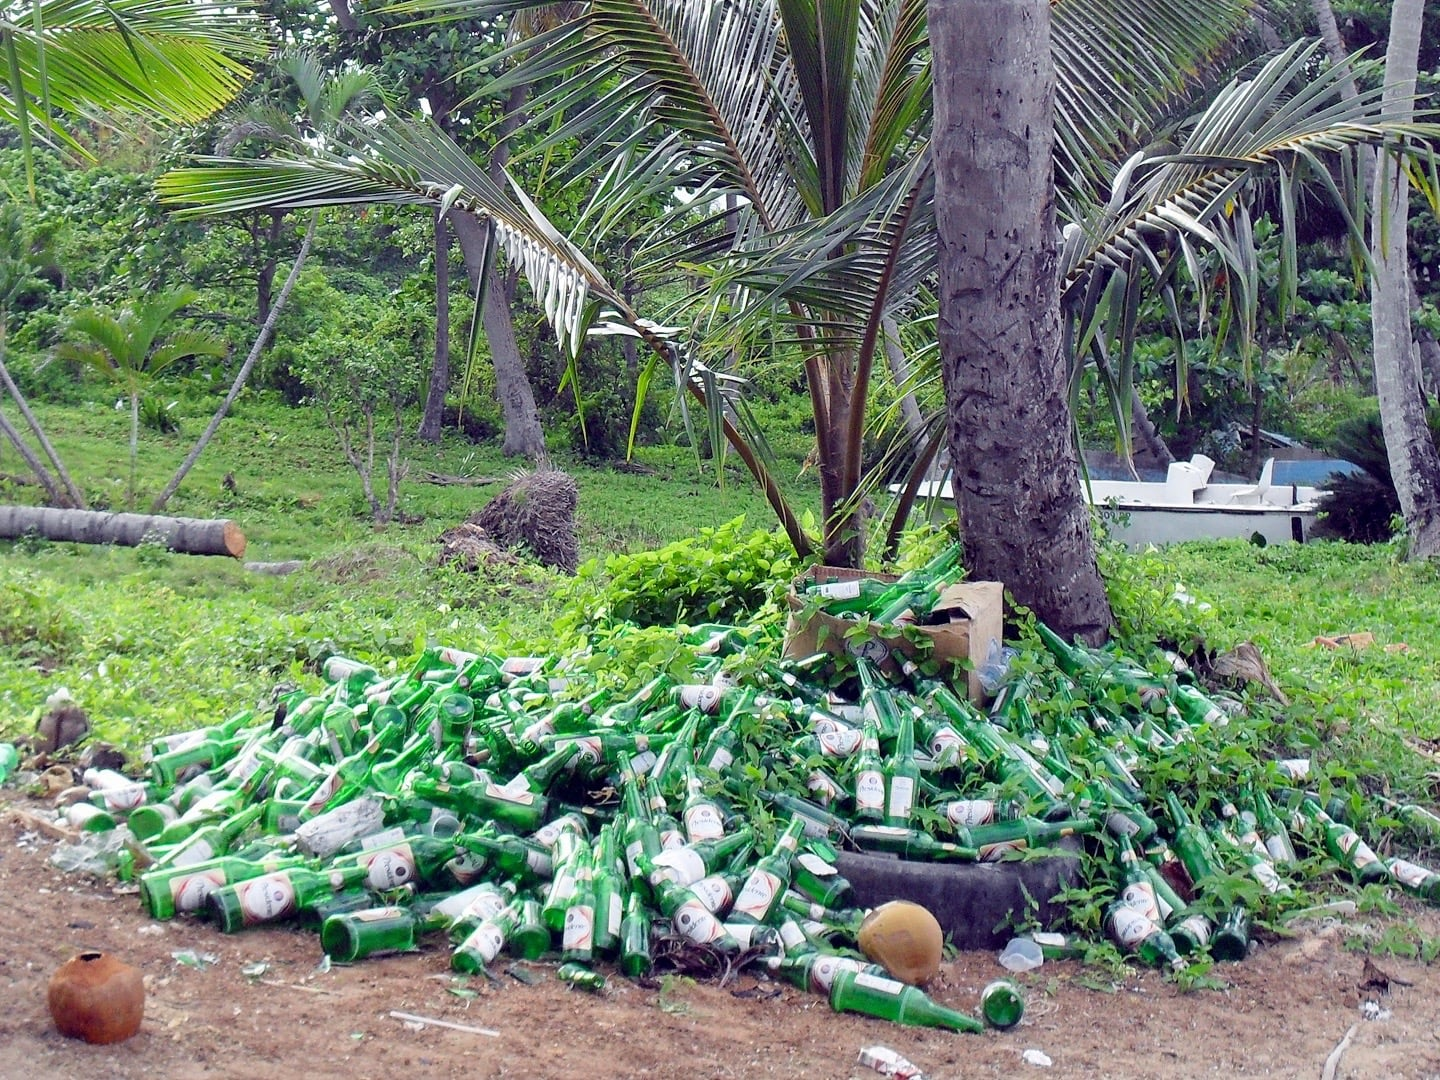 pile of empty beer bottles